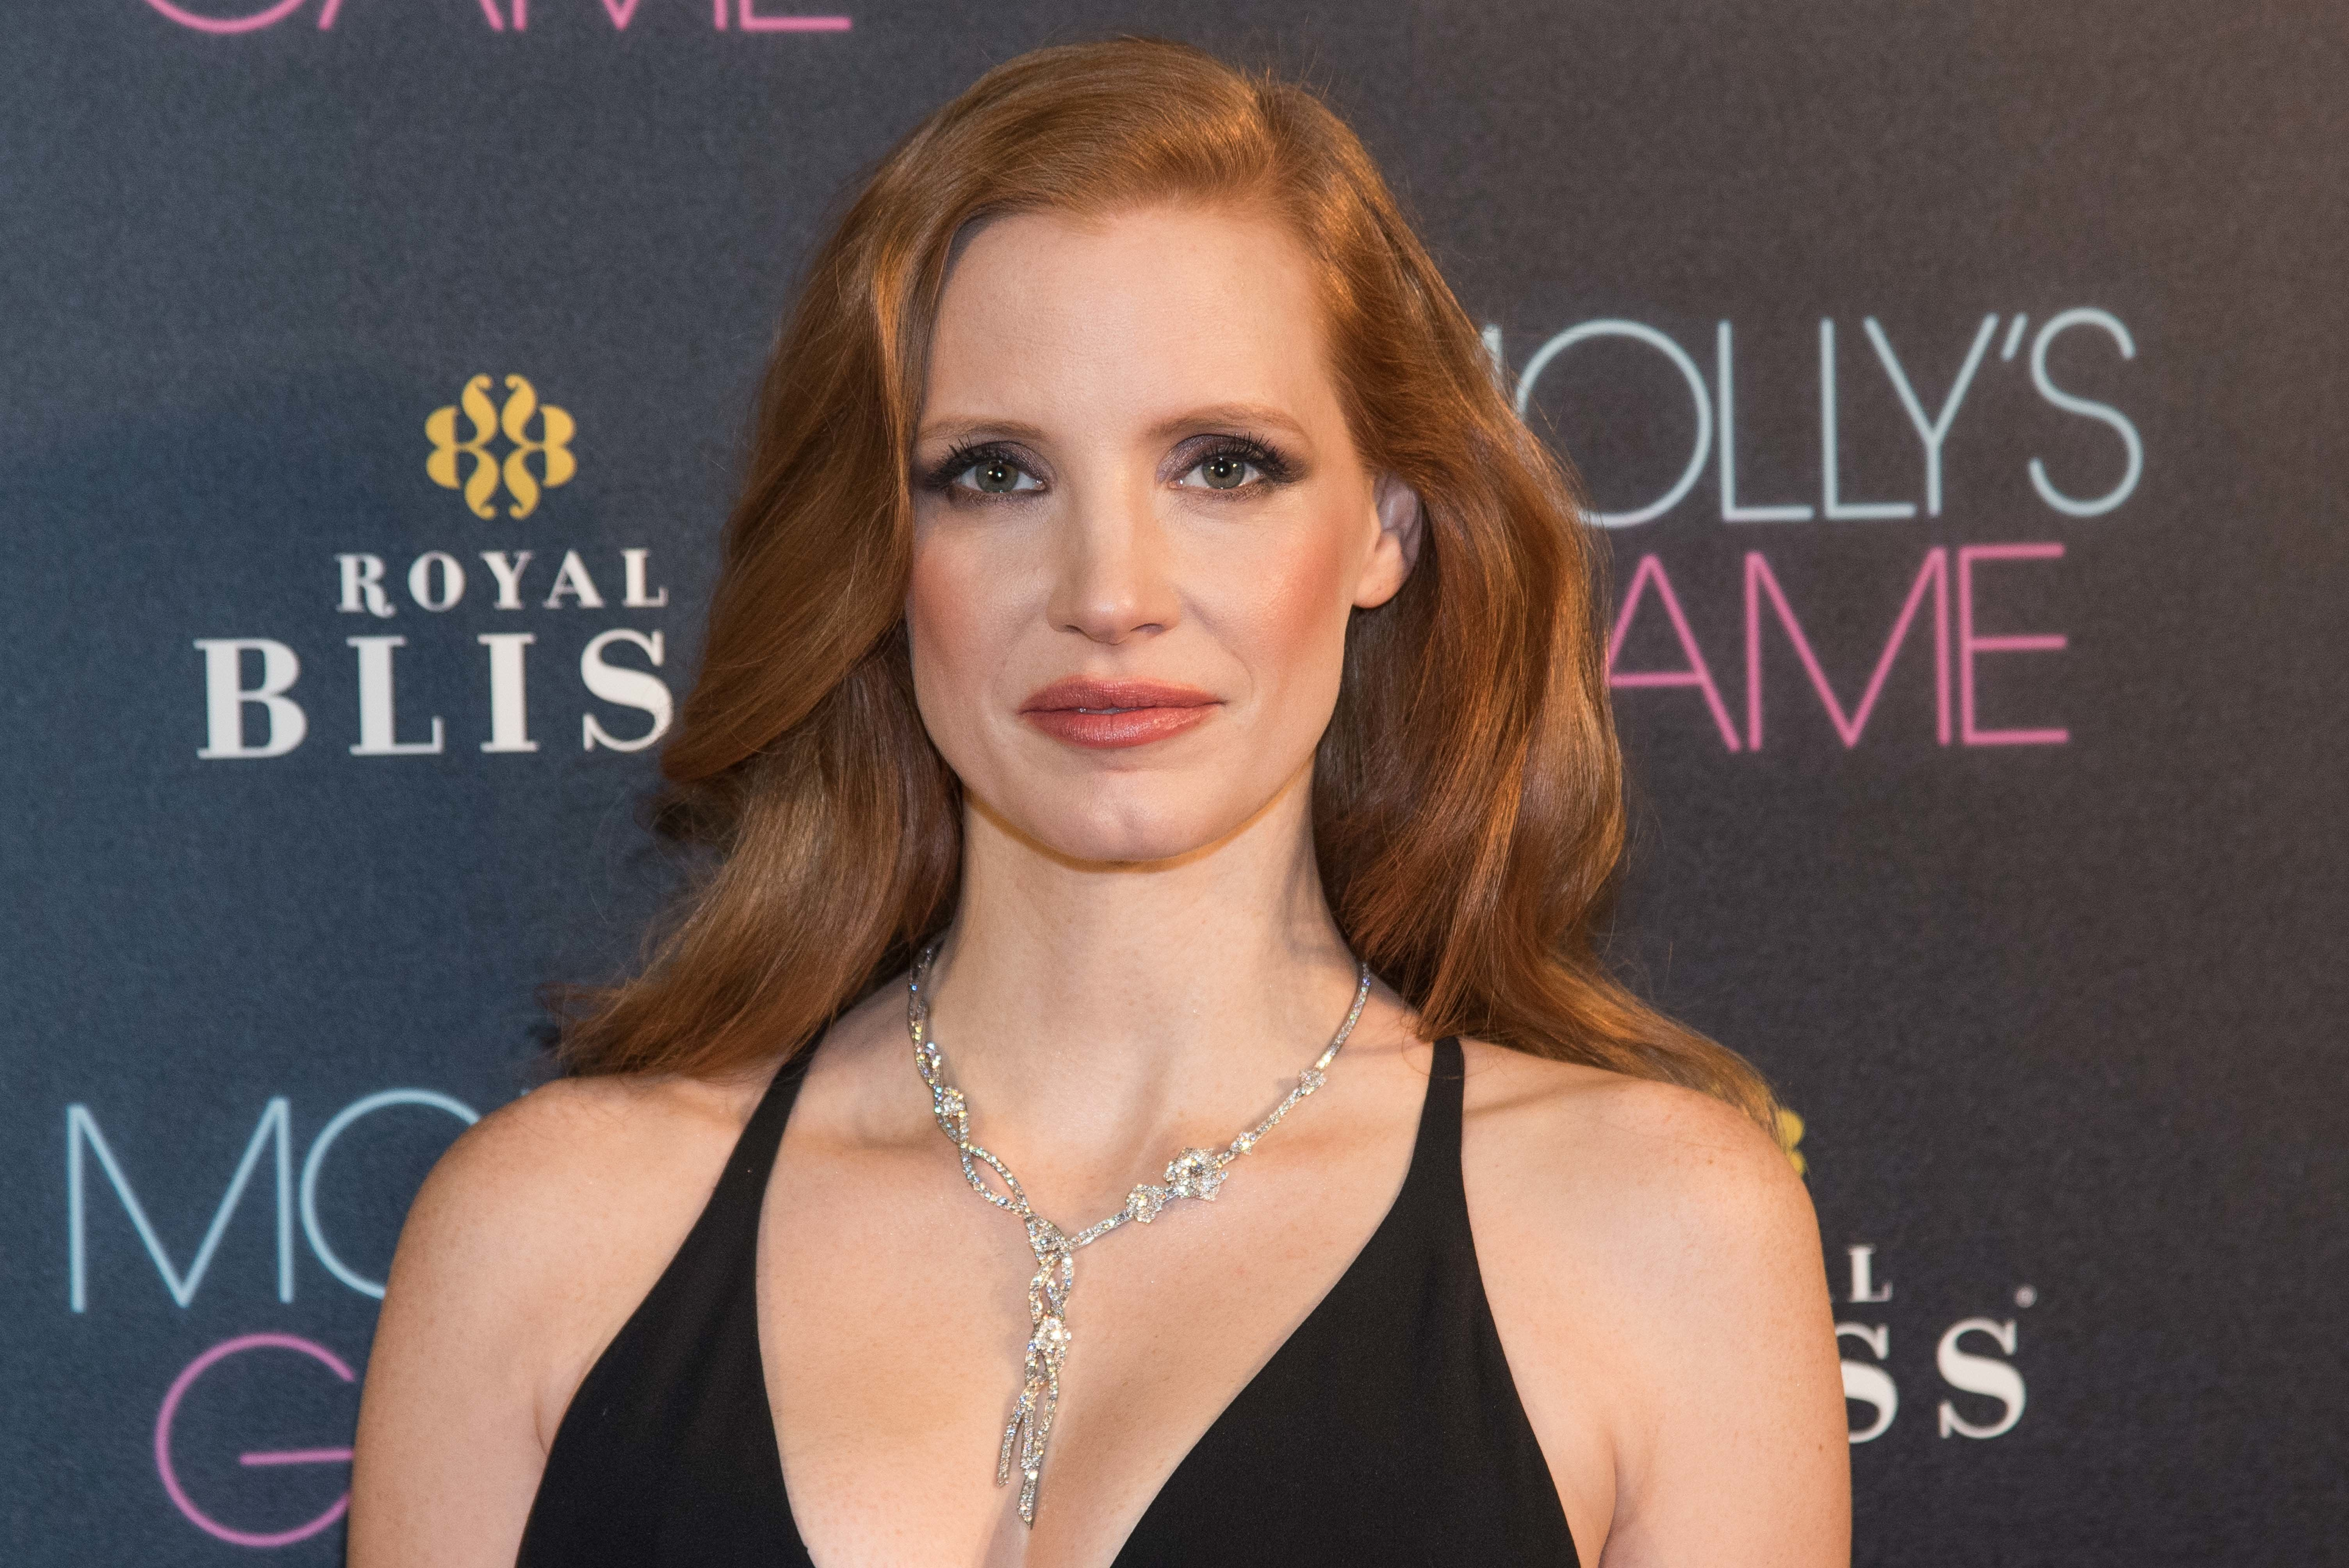 Jessica Chastain attends the 'Molly's Game' movie premiere at 'Capitol Cinema' in Madrid on Dec 4, 2017 (Photo by Gabriel Maseda/NurPhoto via Getty Images)